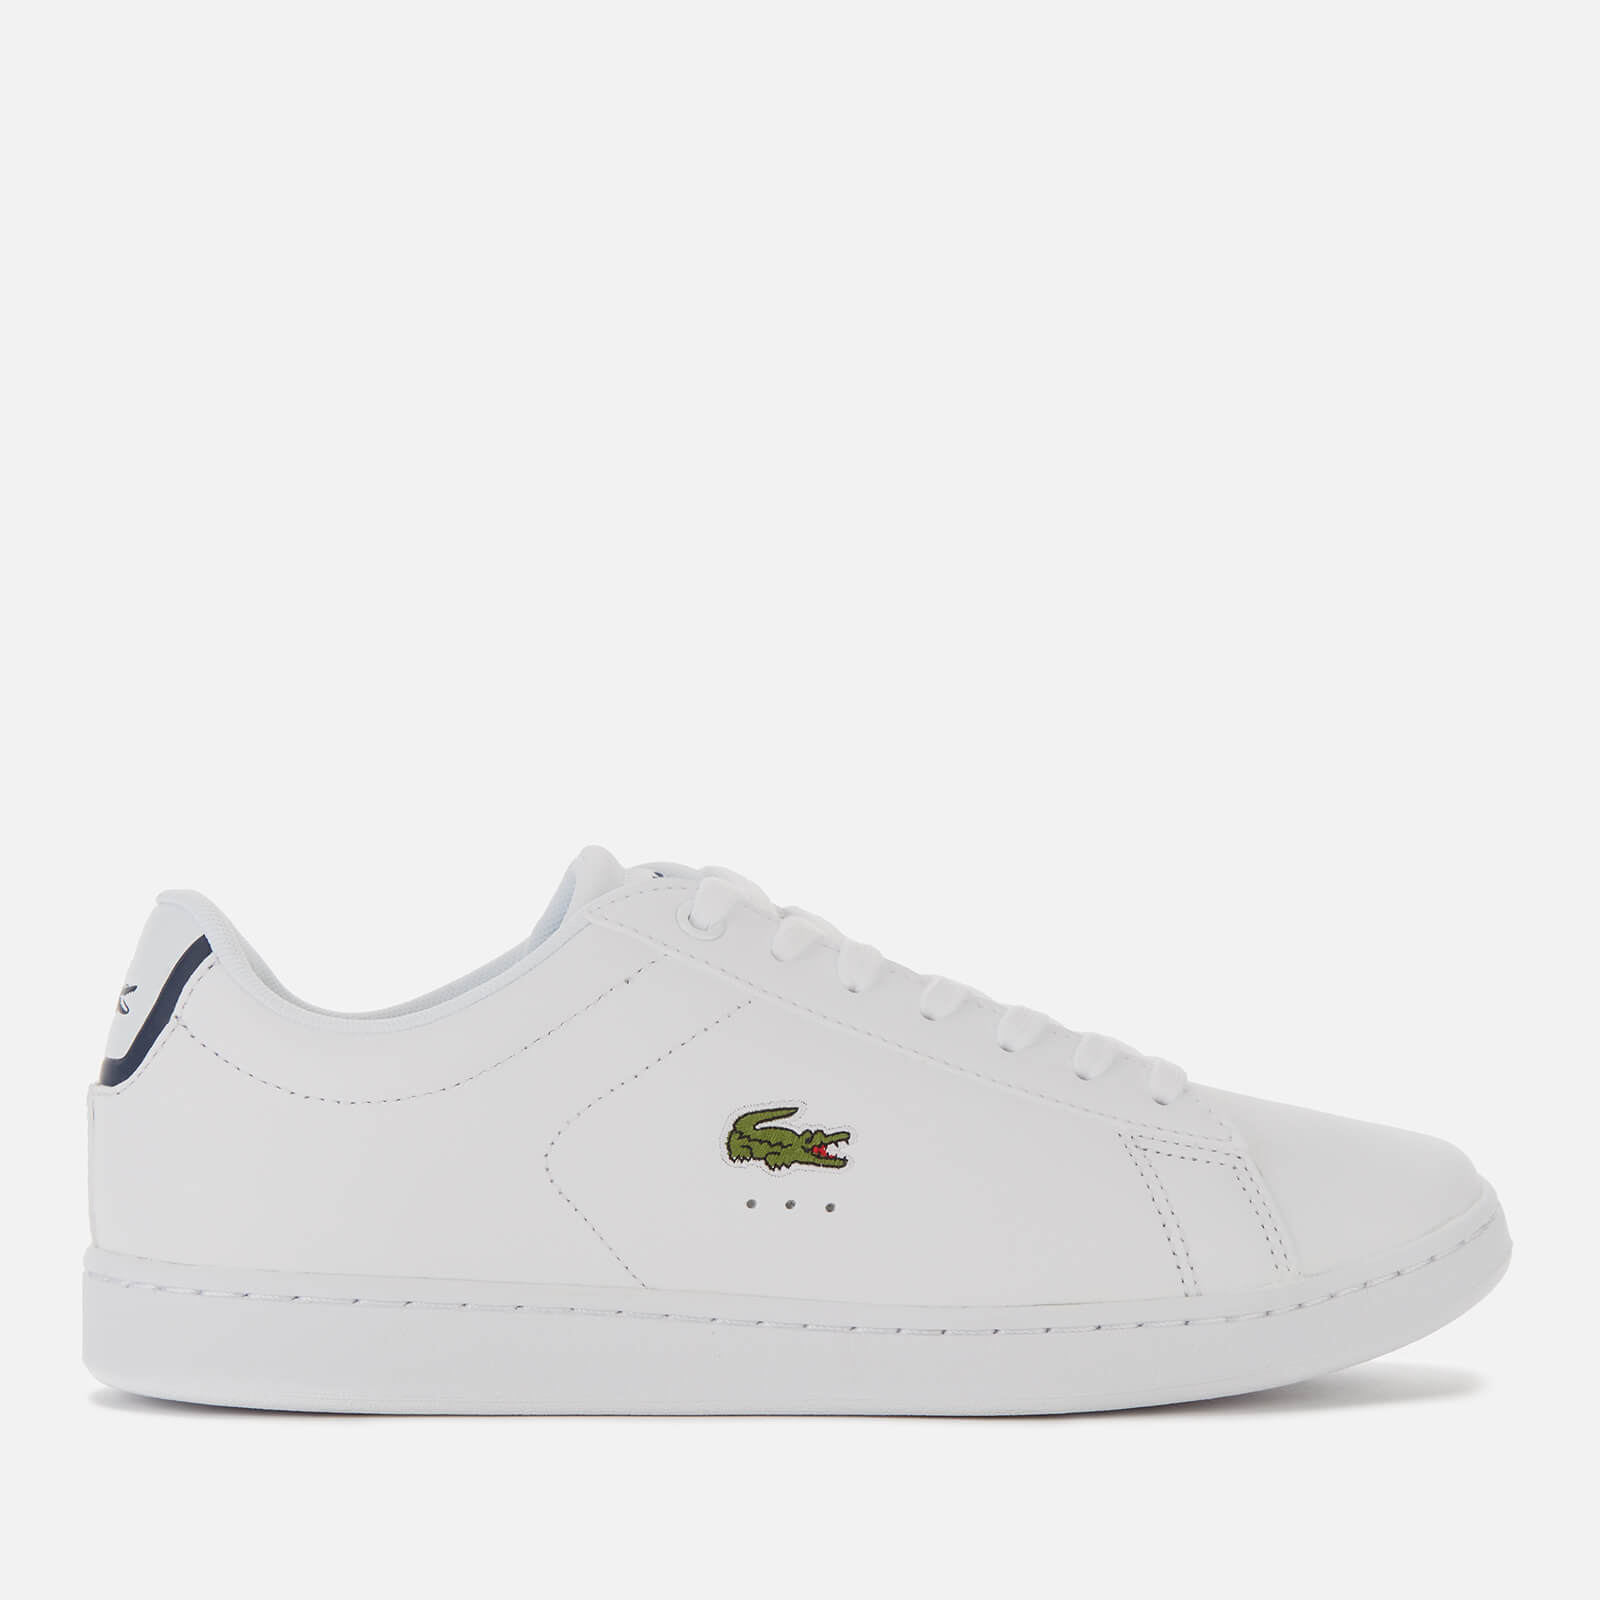 Lacoste Men's Carnaby Evo Leather Trainers - White - UK 7